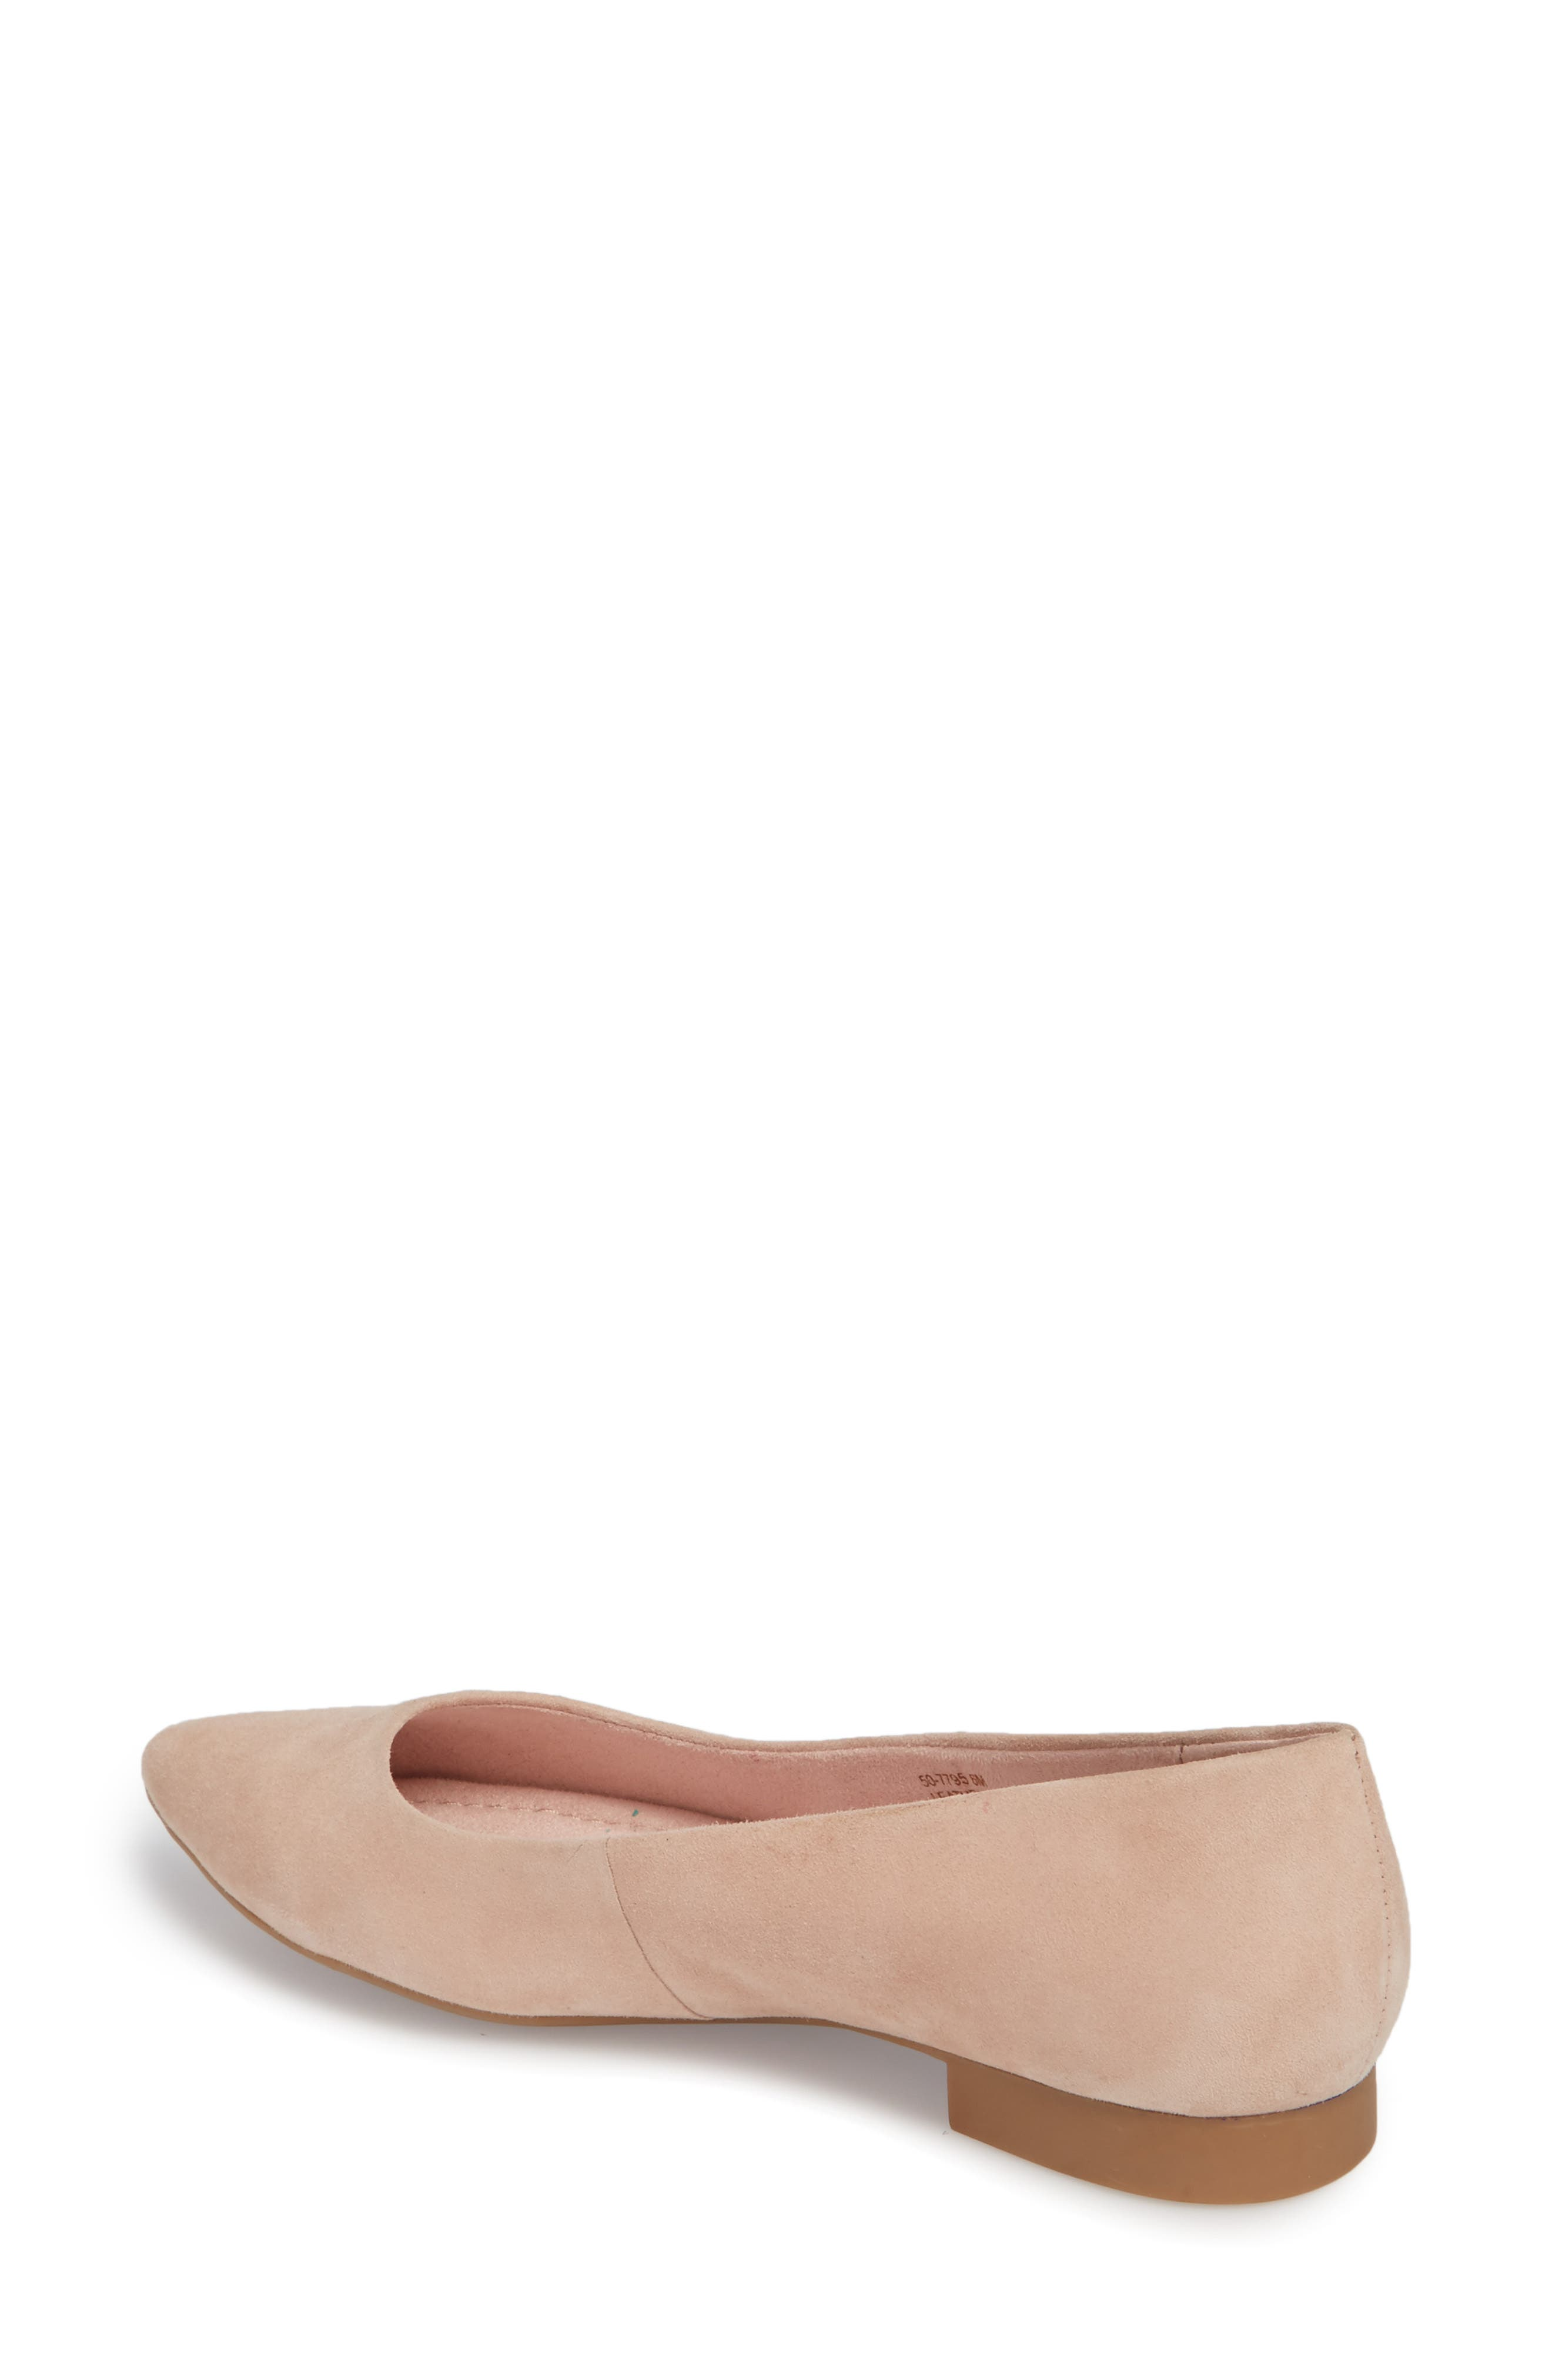 'Vivien' Pointy Toe Flat,                             Alternate thumbnail 2, color,                             BLUSH SUEDE